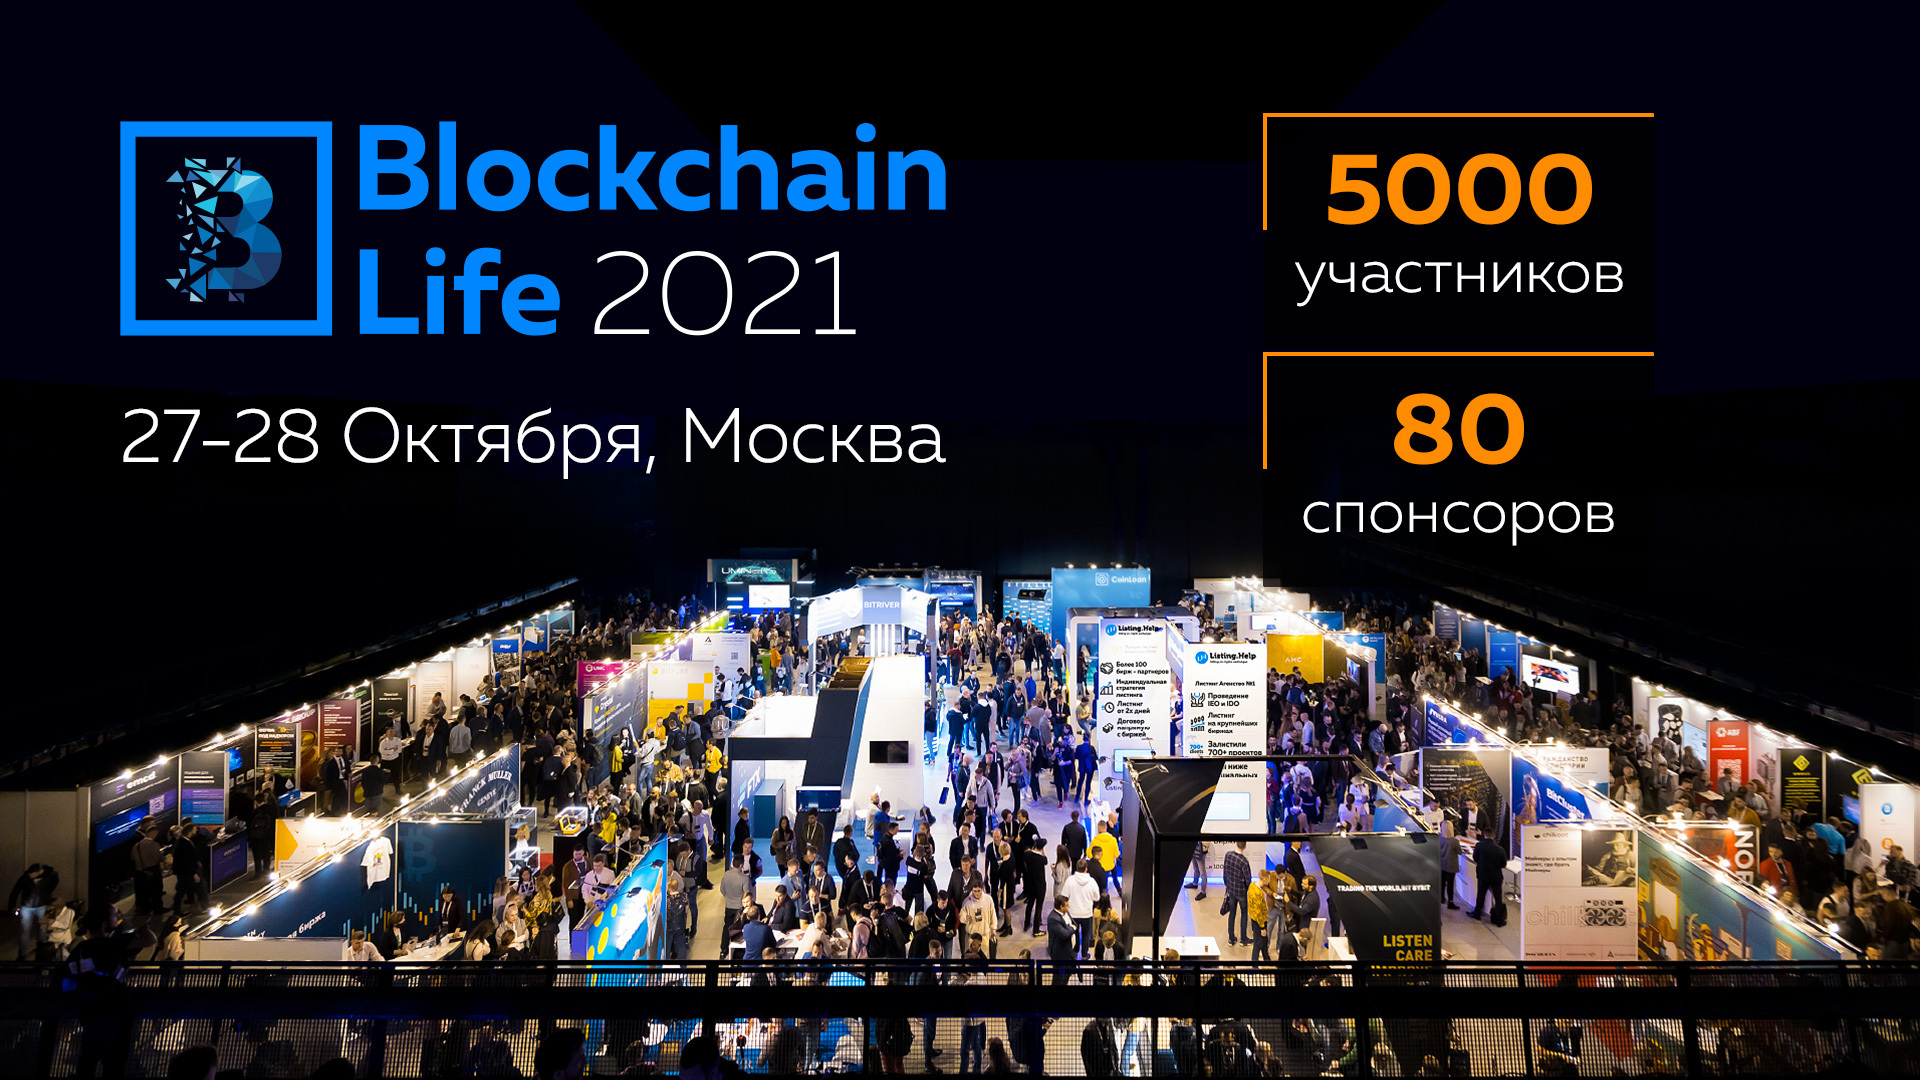 Blockchain Life Forum 2021 is Waiting for You in Moscow